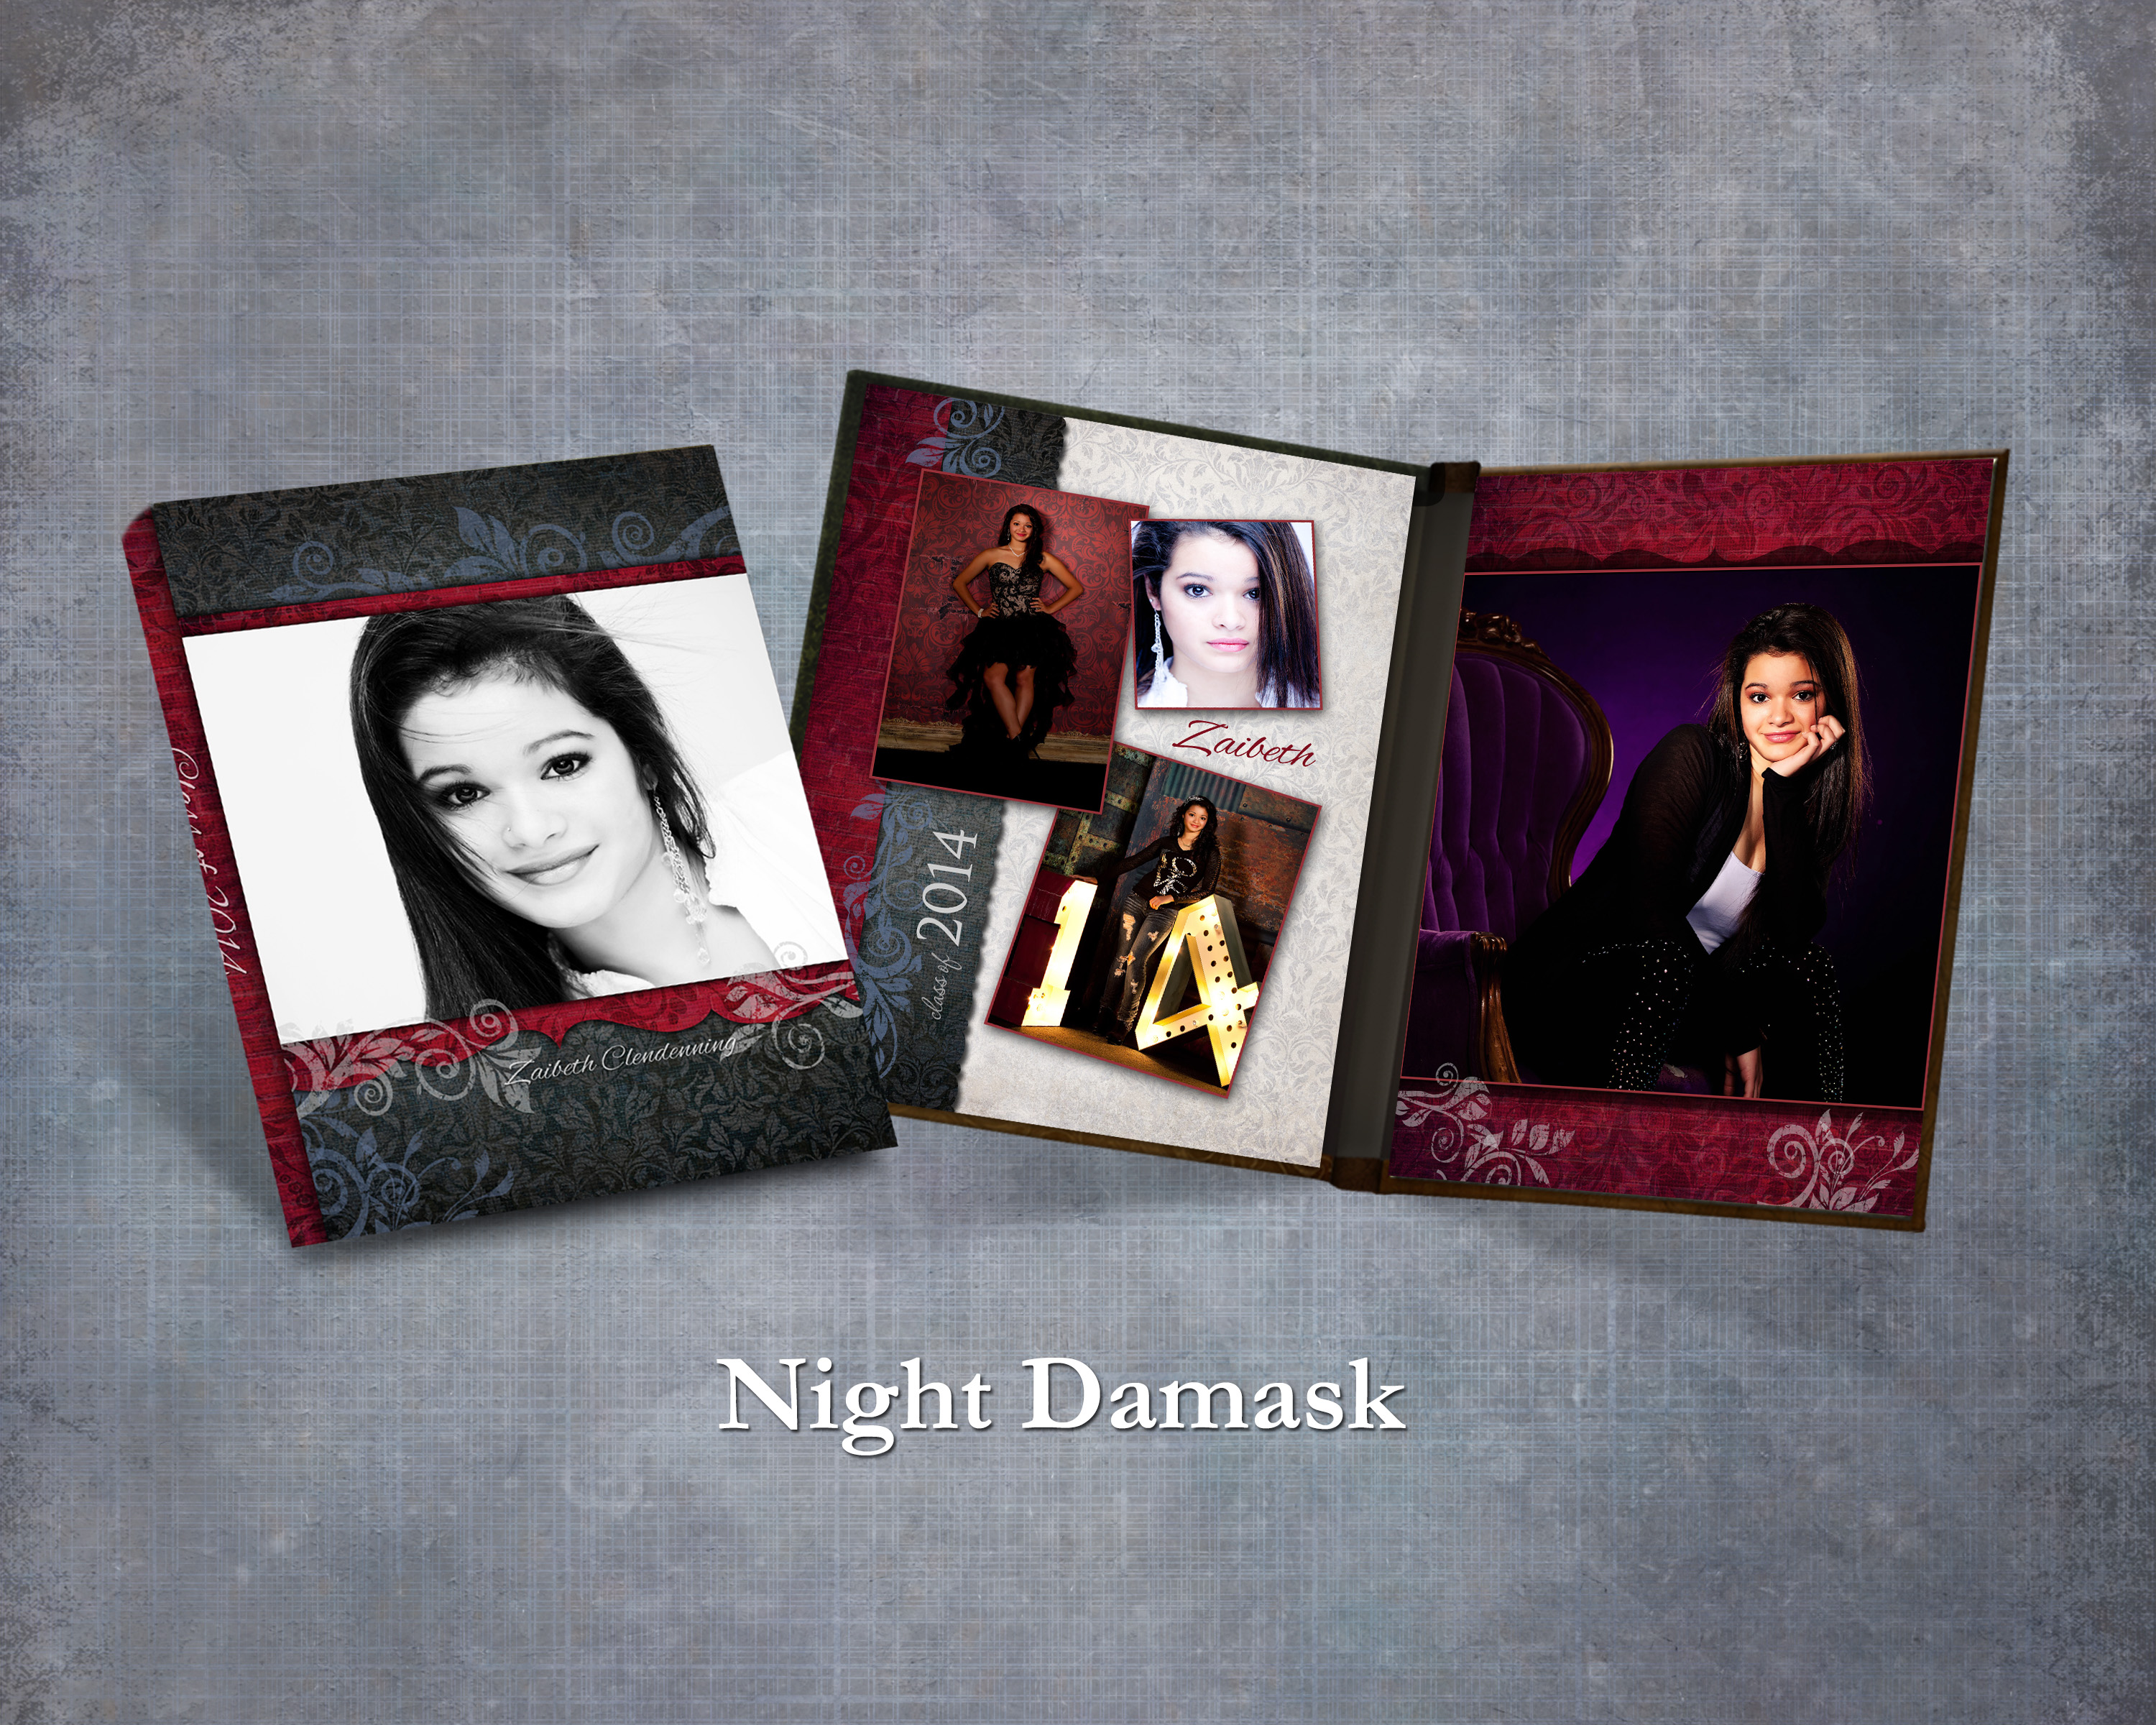 Night Damask